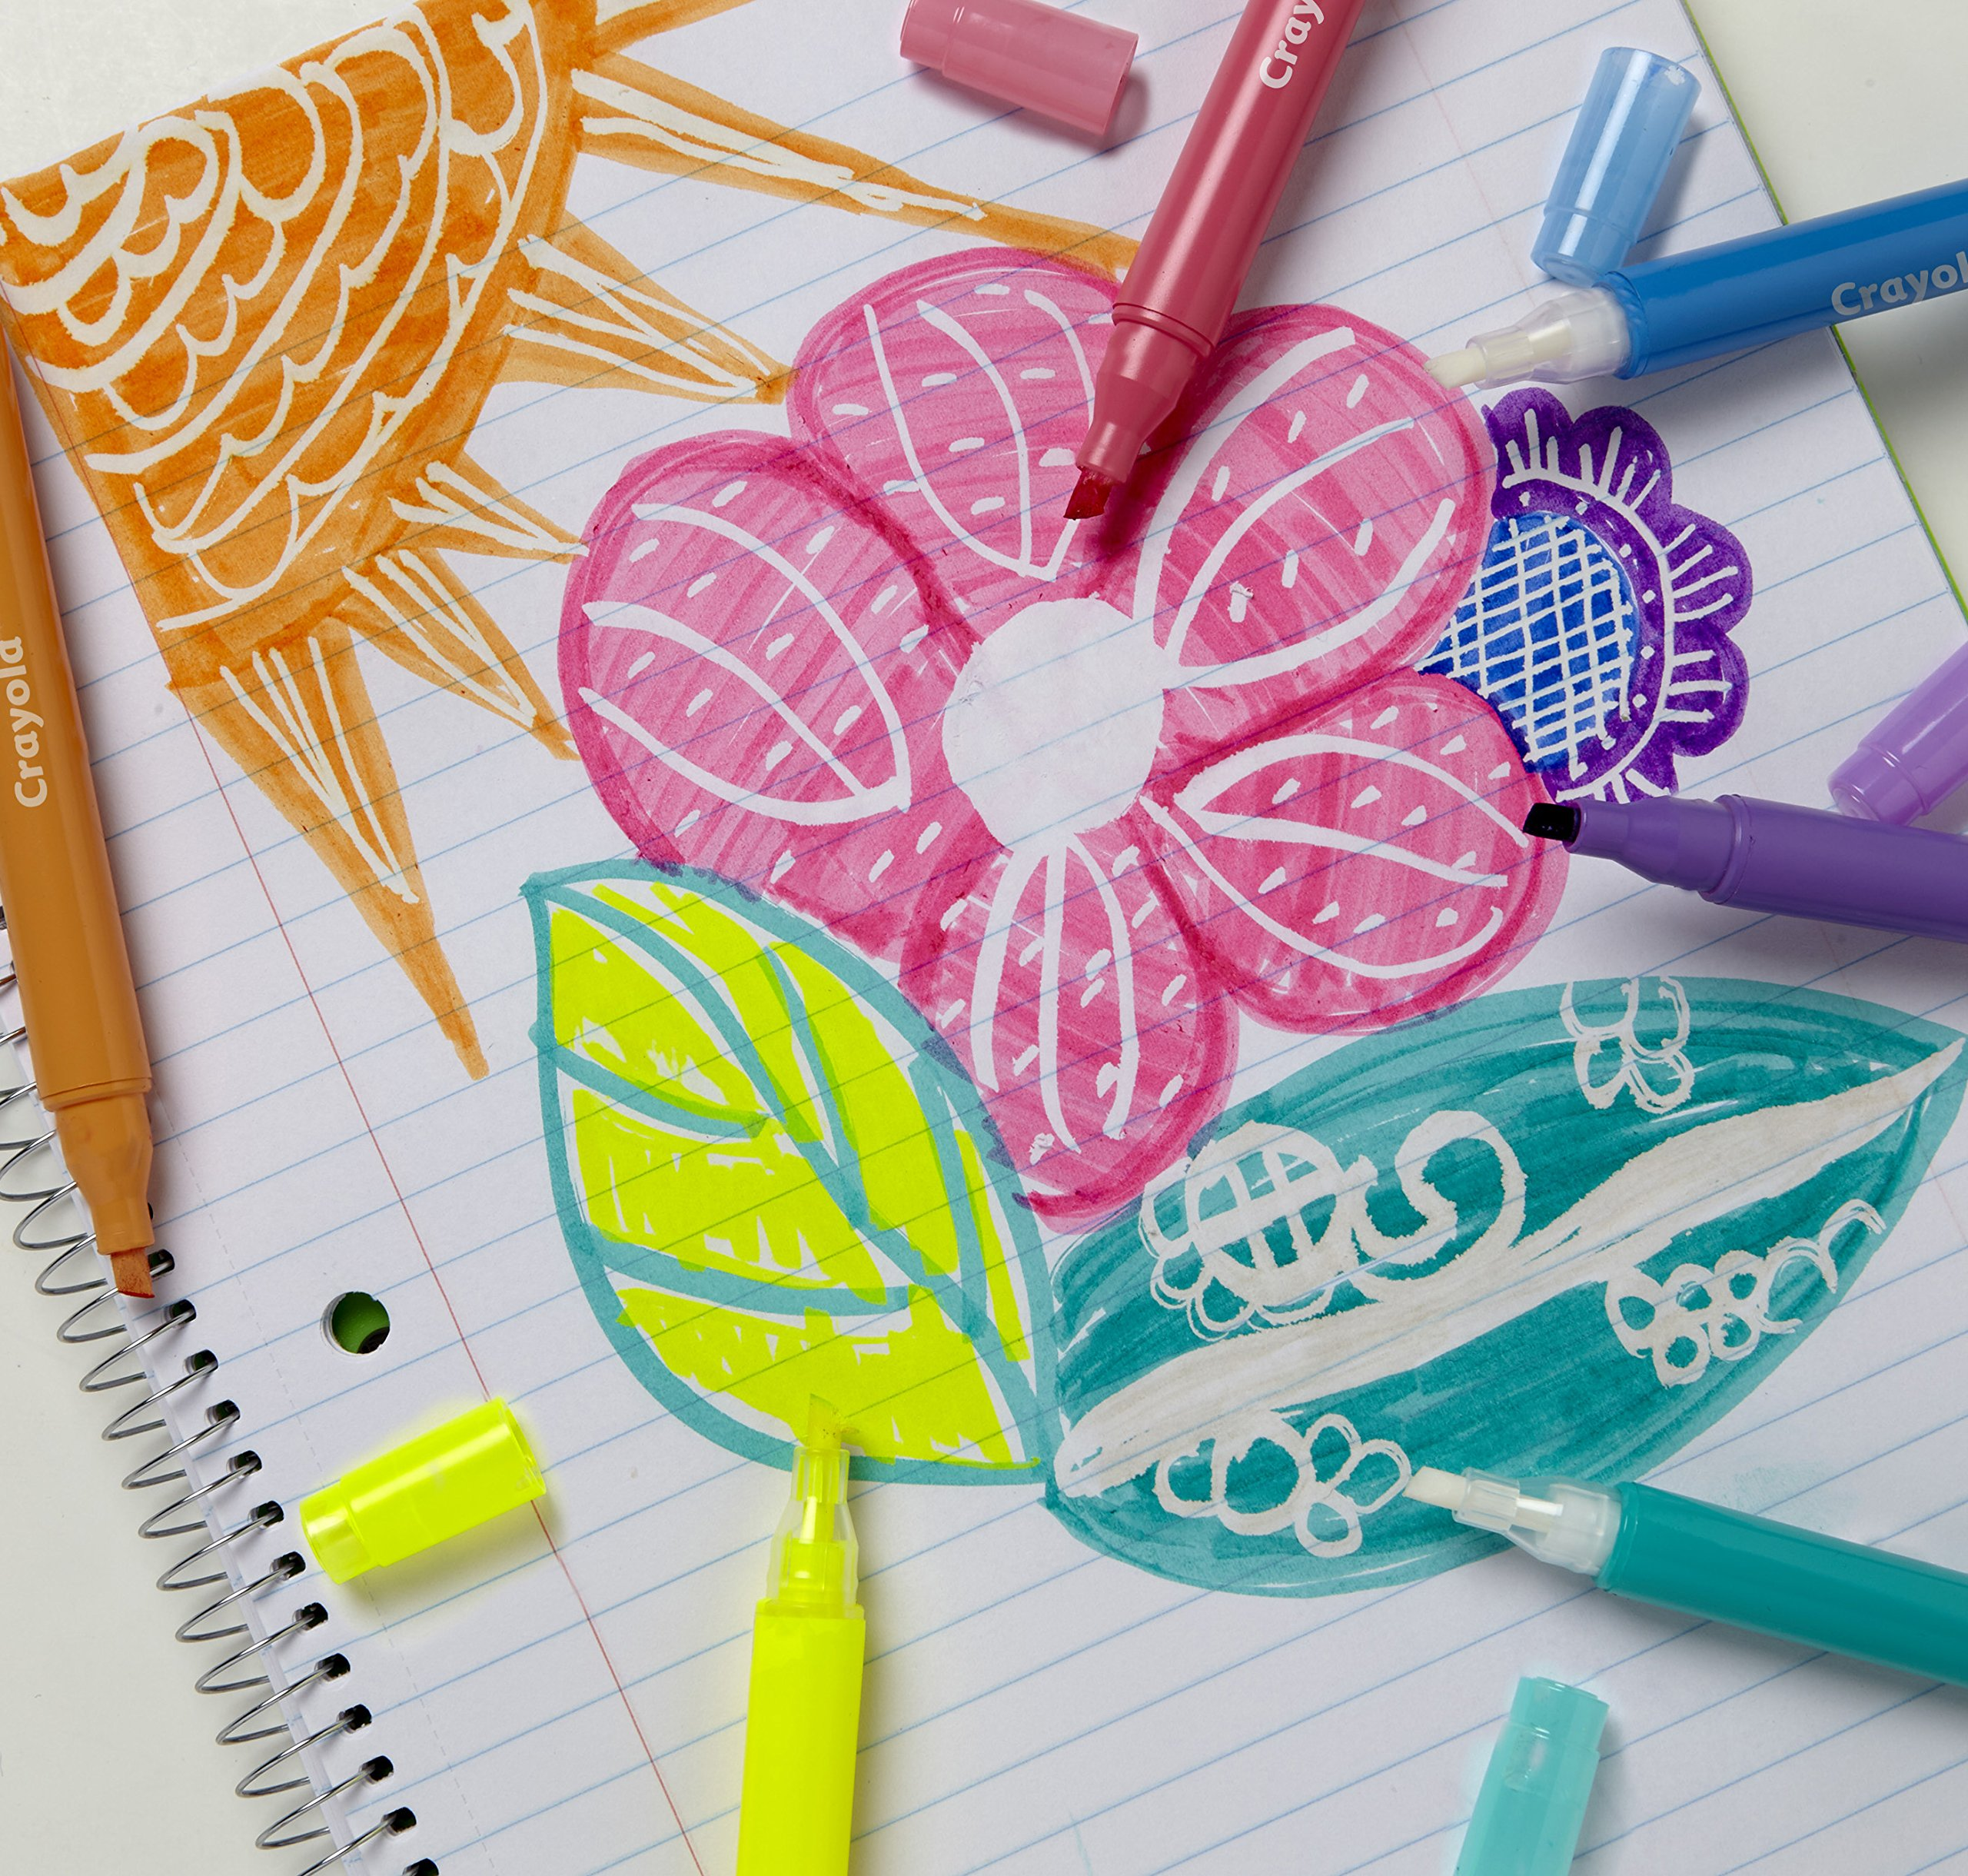 Crayola Take Note! Erasable Highlighters, Bullet Journal & School Supplies, 18Count, Gift by Crayola (Image #8)